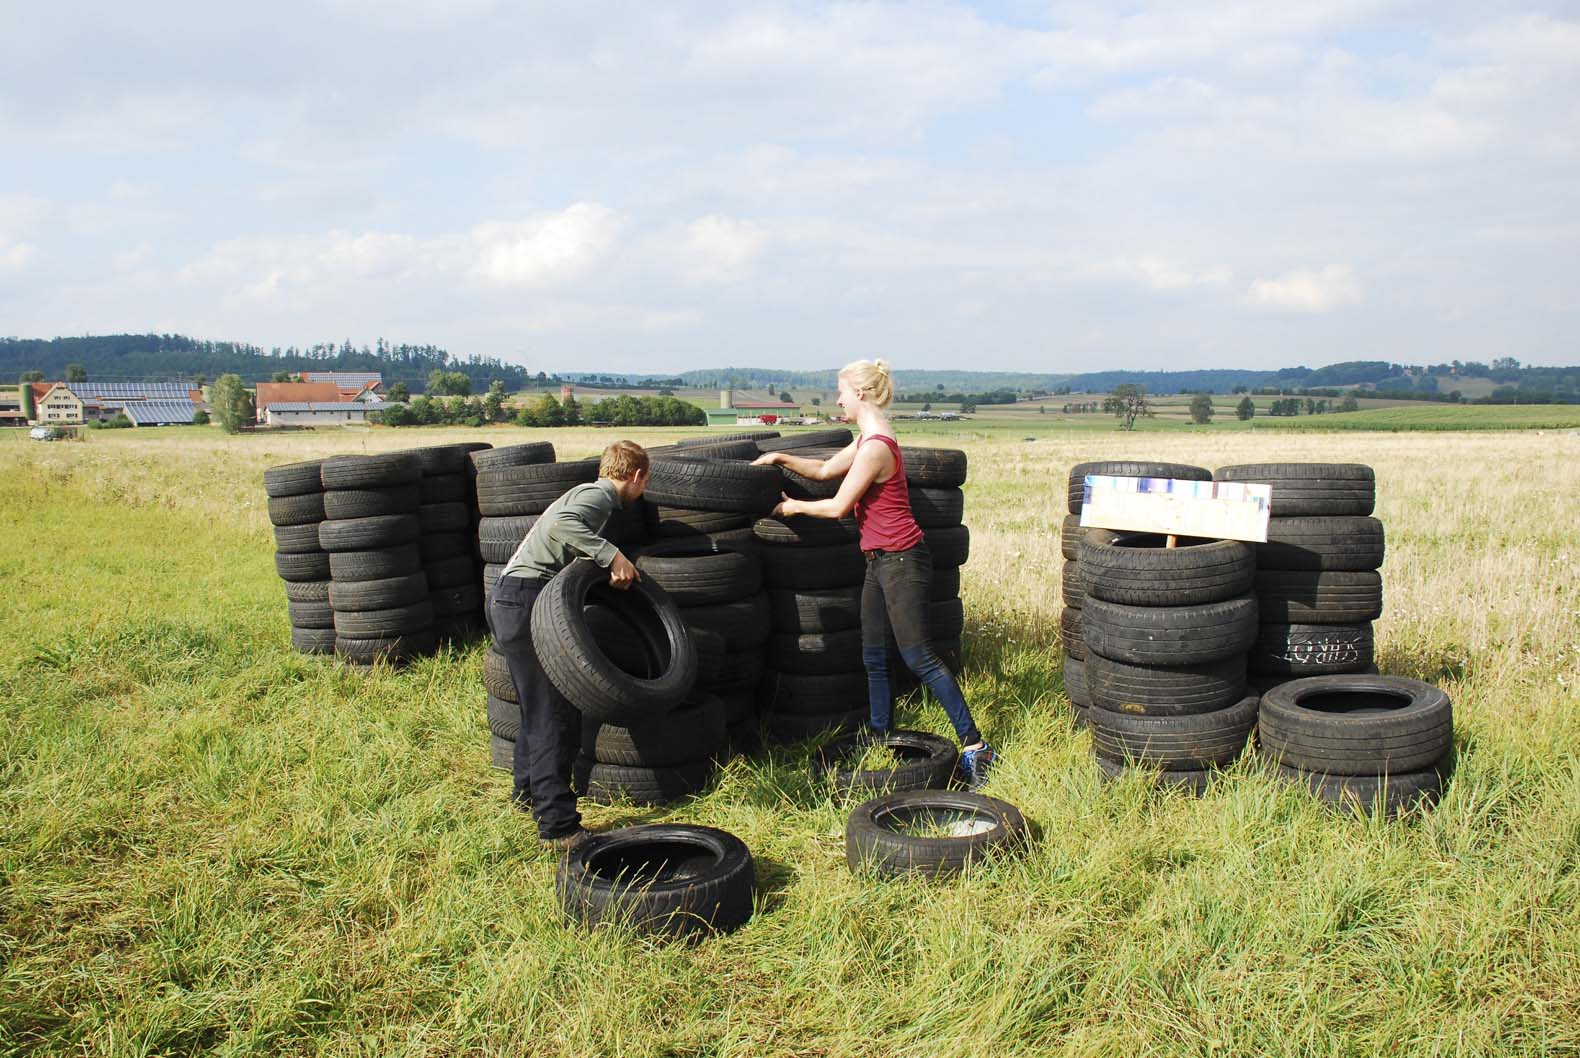 Eco Village community starts to build Germany's first Earthship